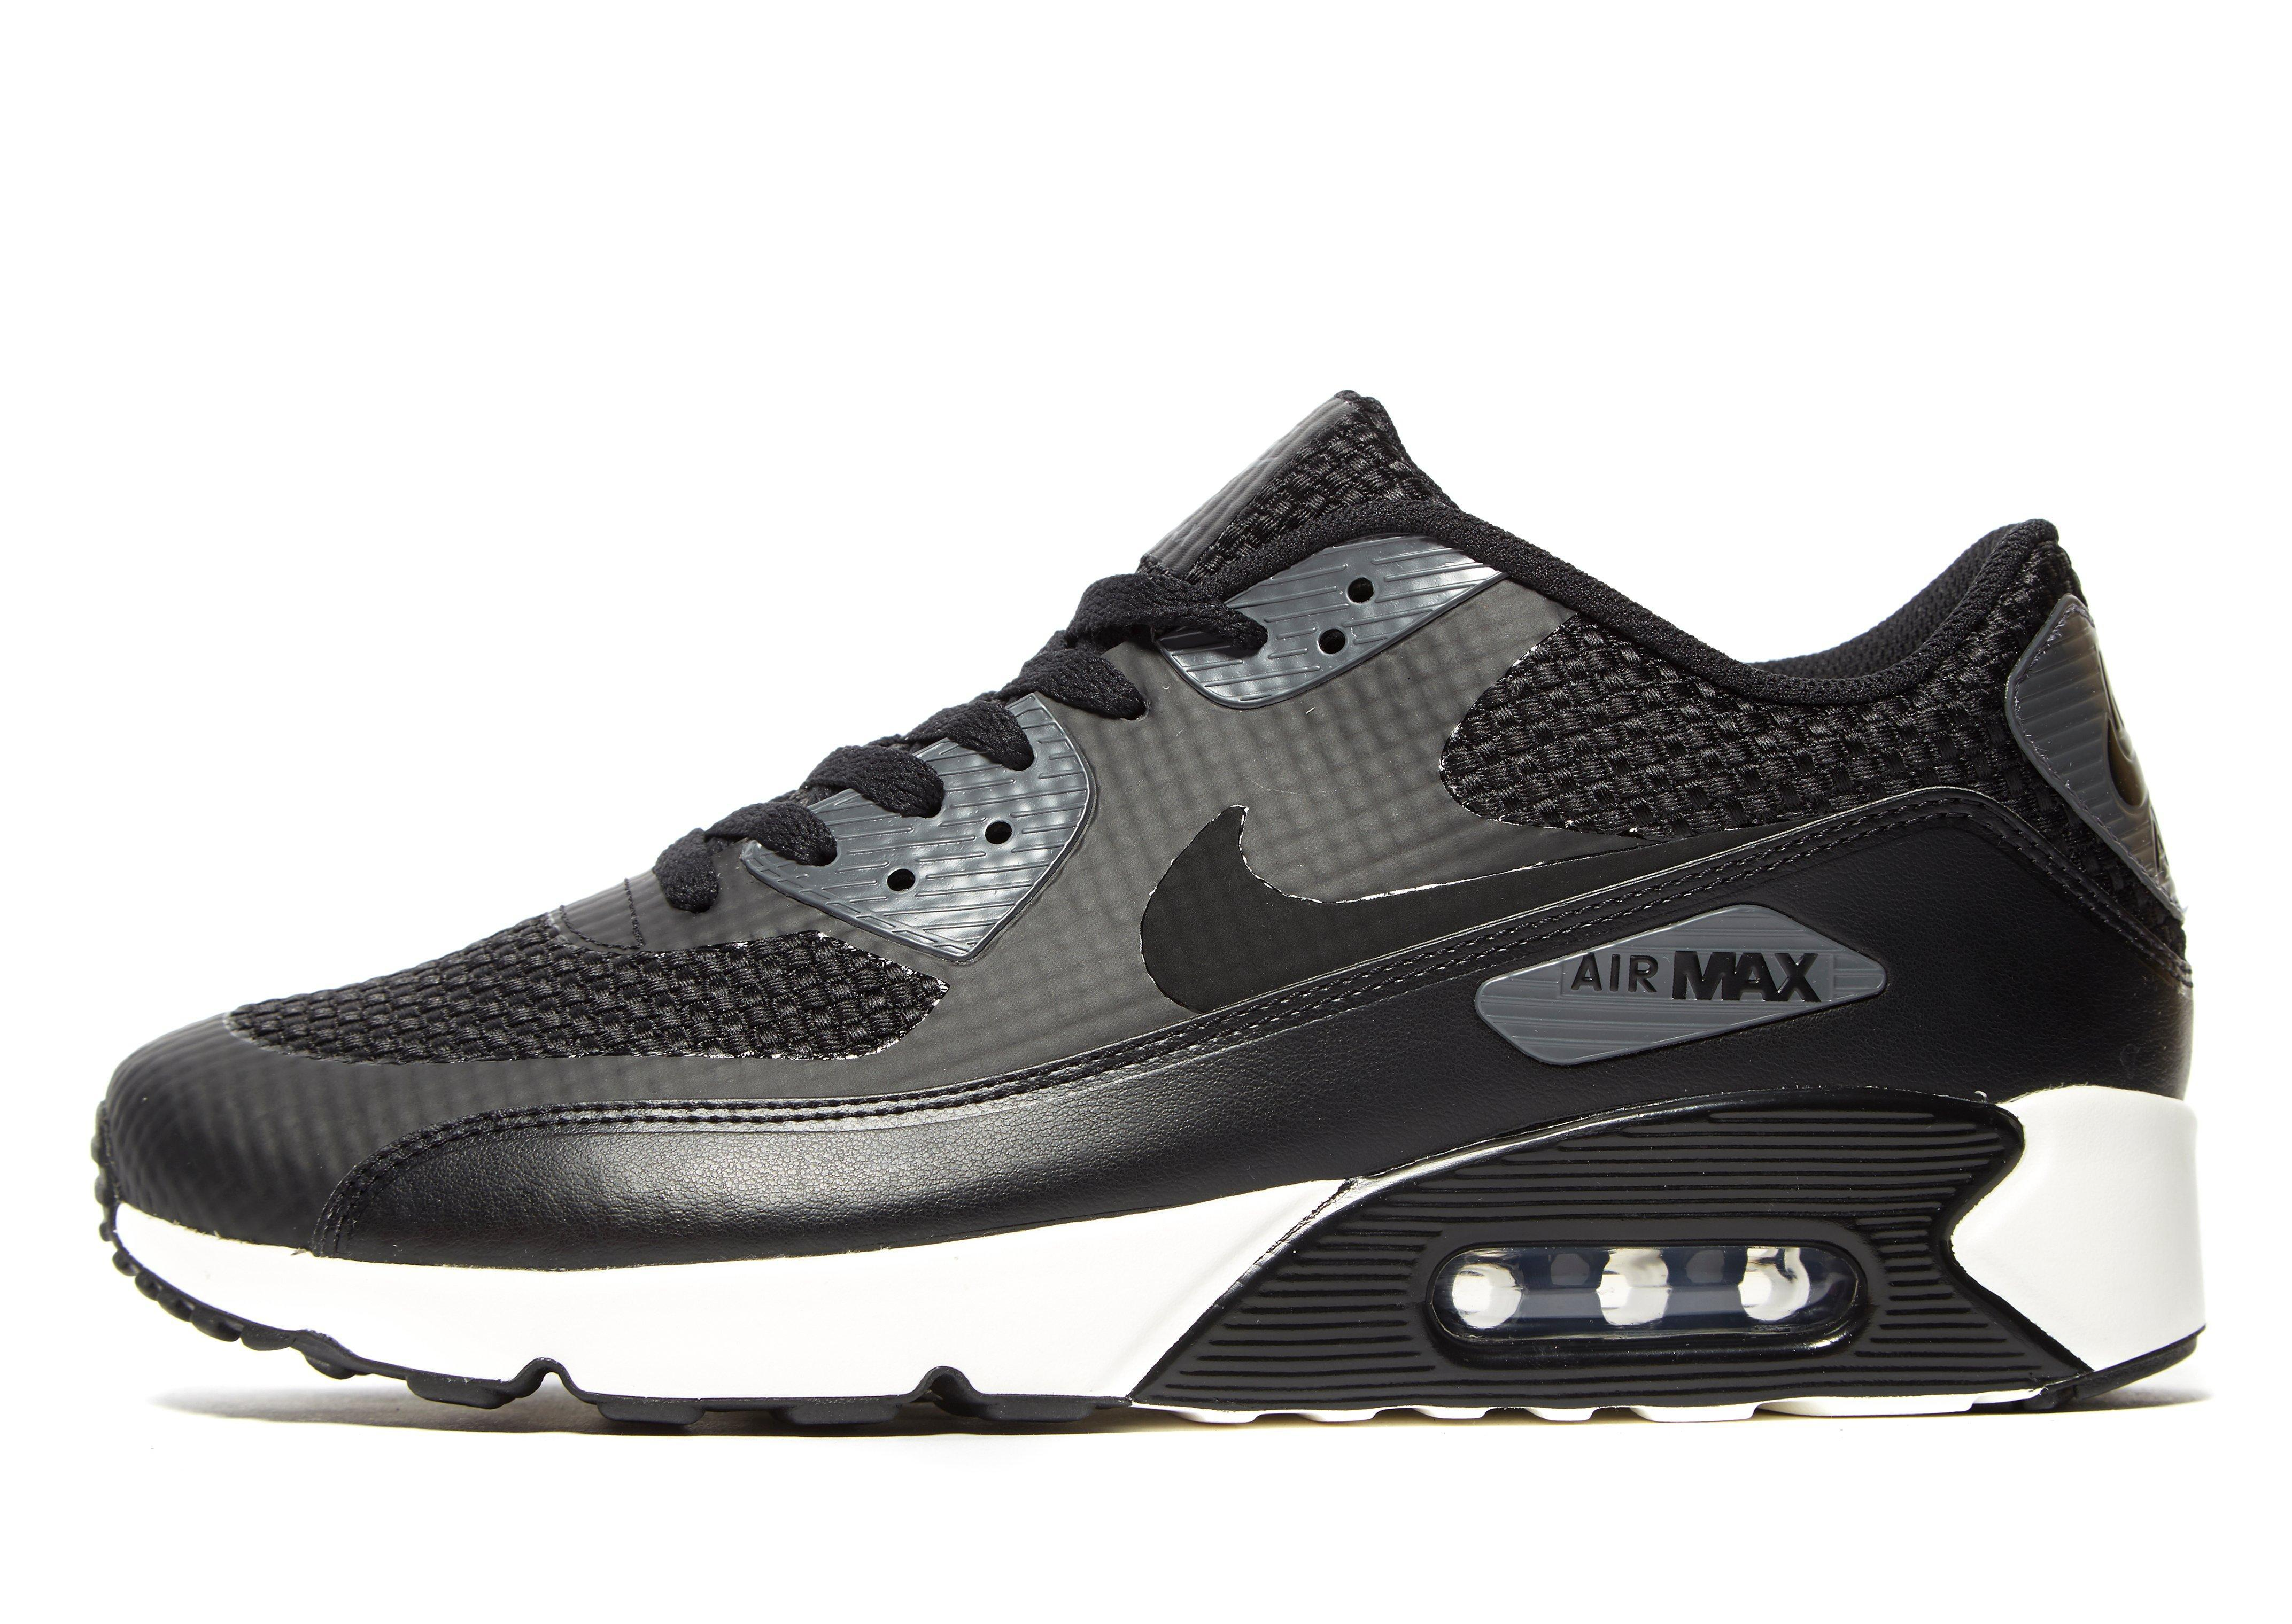 promo code for jd sports nike air max 1 ultra moire 969b2 6ef90